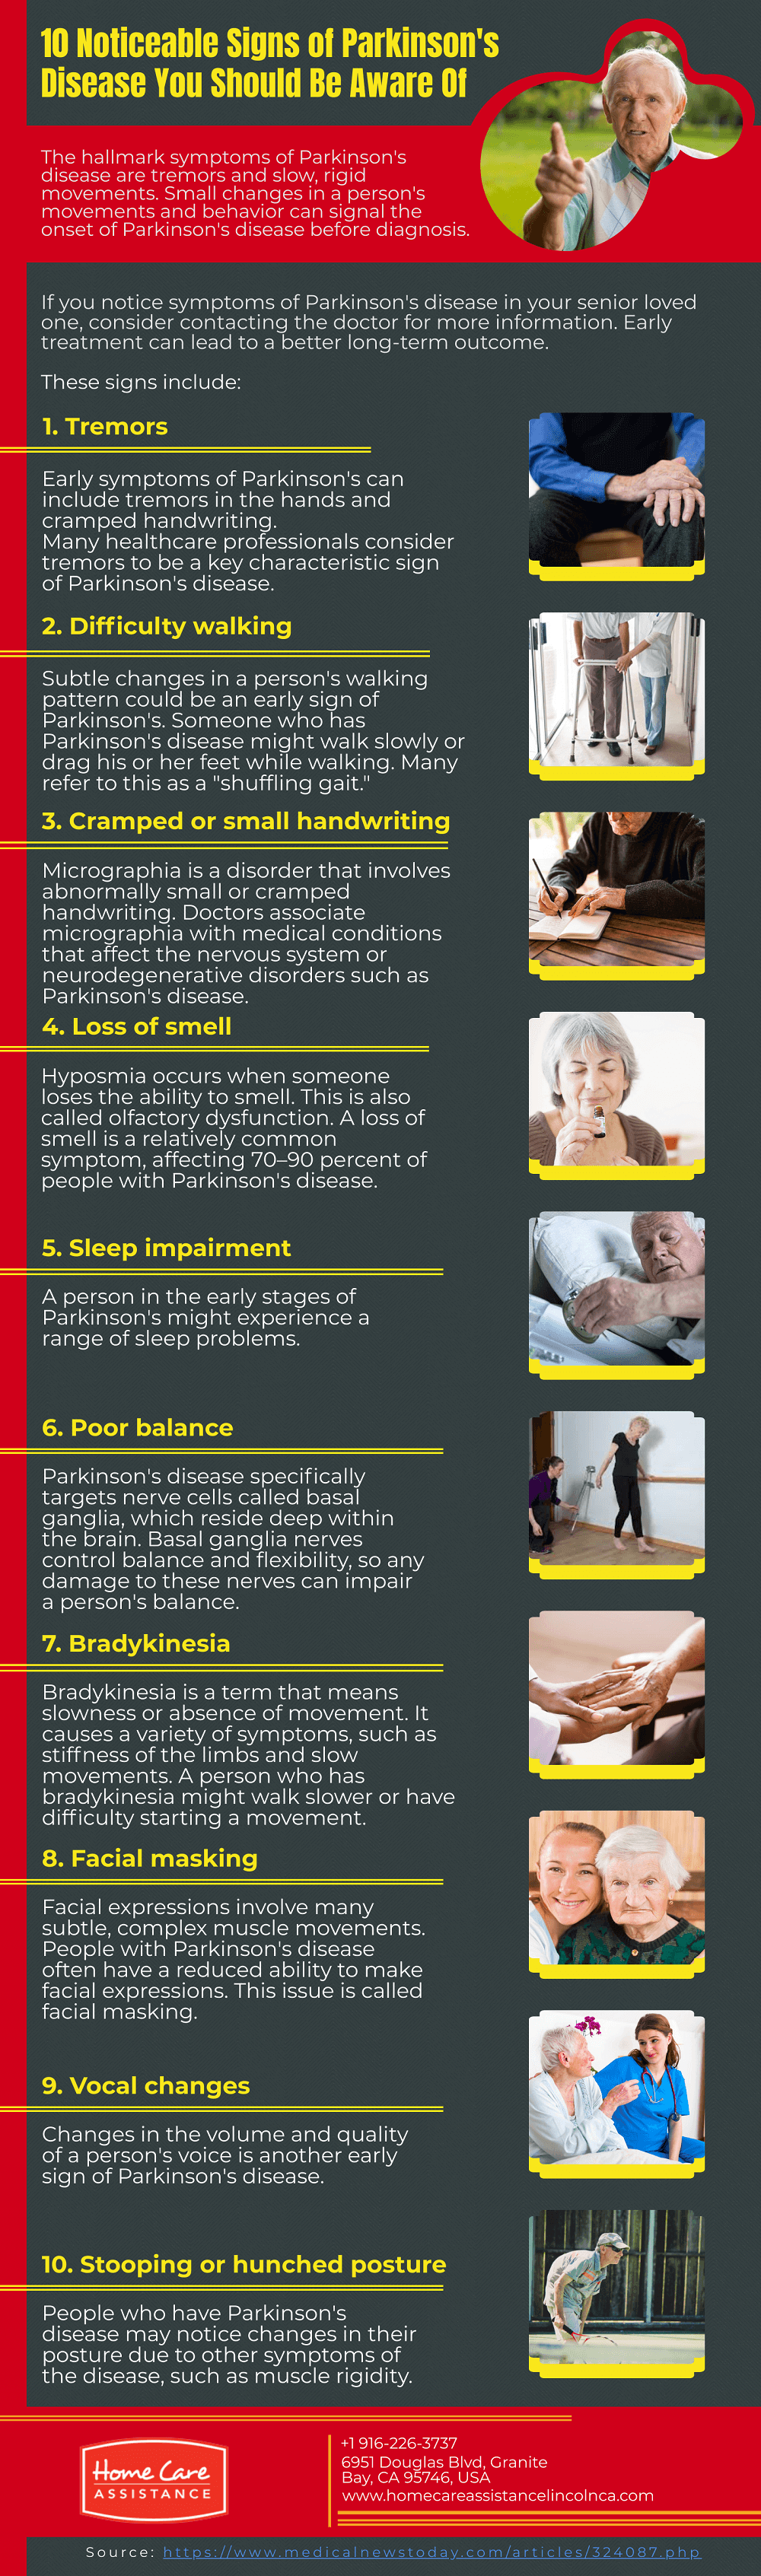 10 Noticeable Signs of Parkinson's Disease You Should Be Aware Of [Infographic]